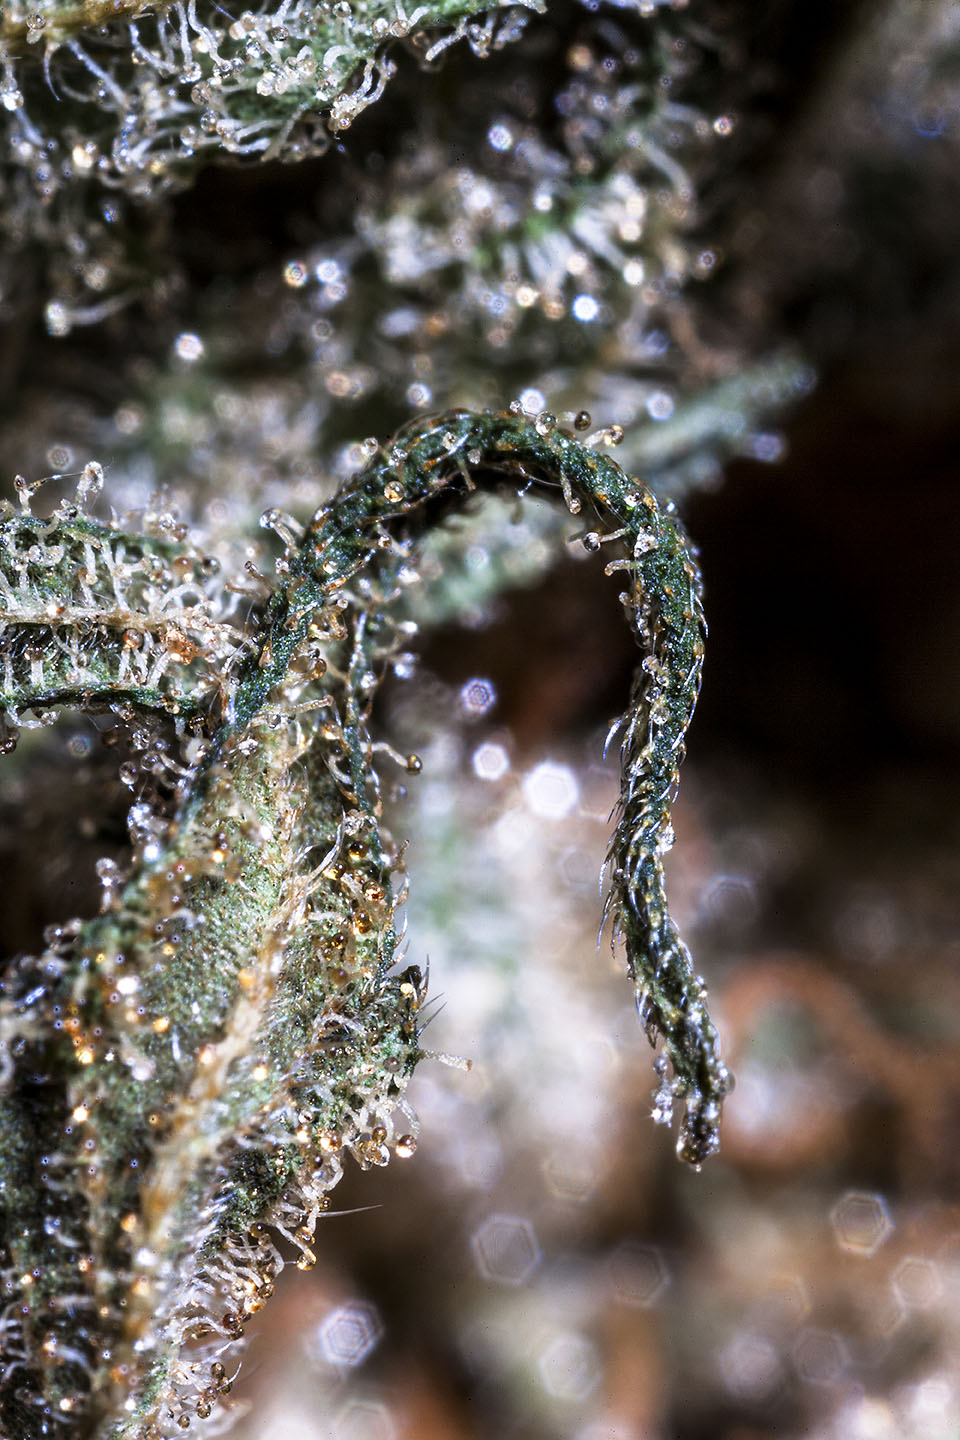 Shishkaberry macro-photography, Beauty of Cannabis by Spurs Broken